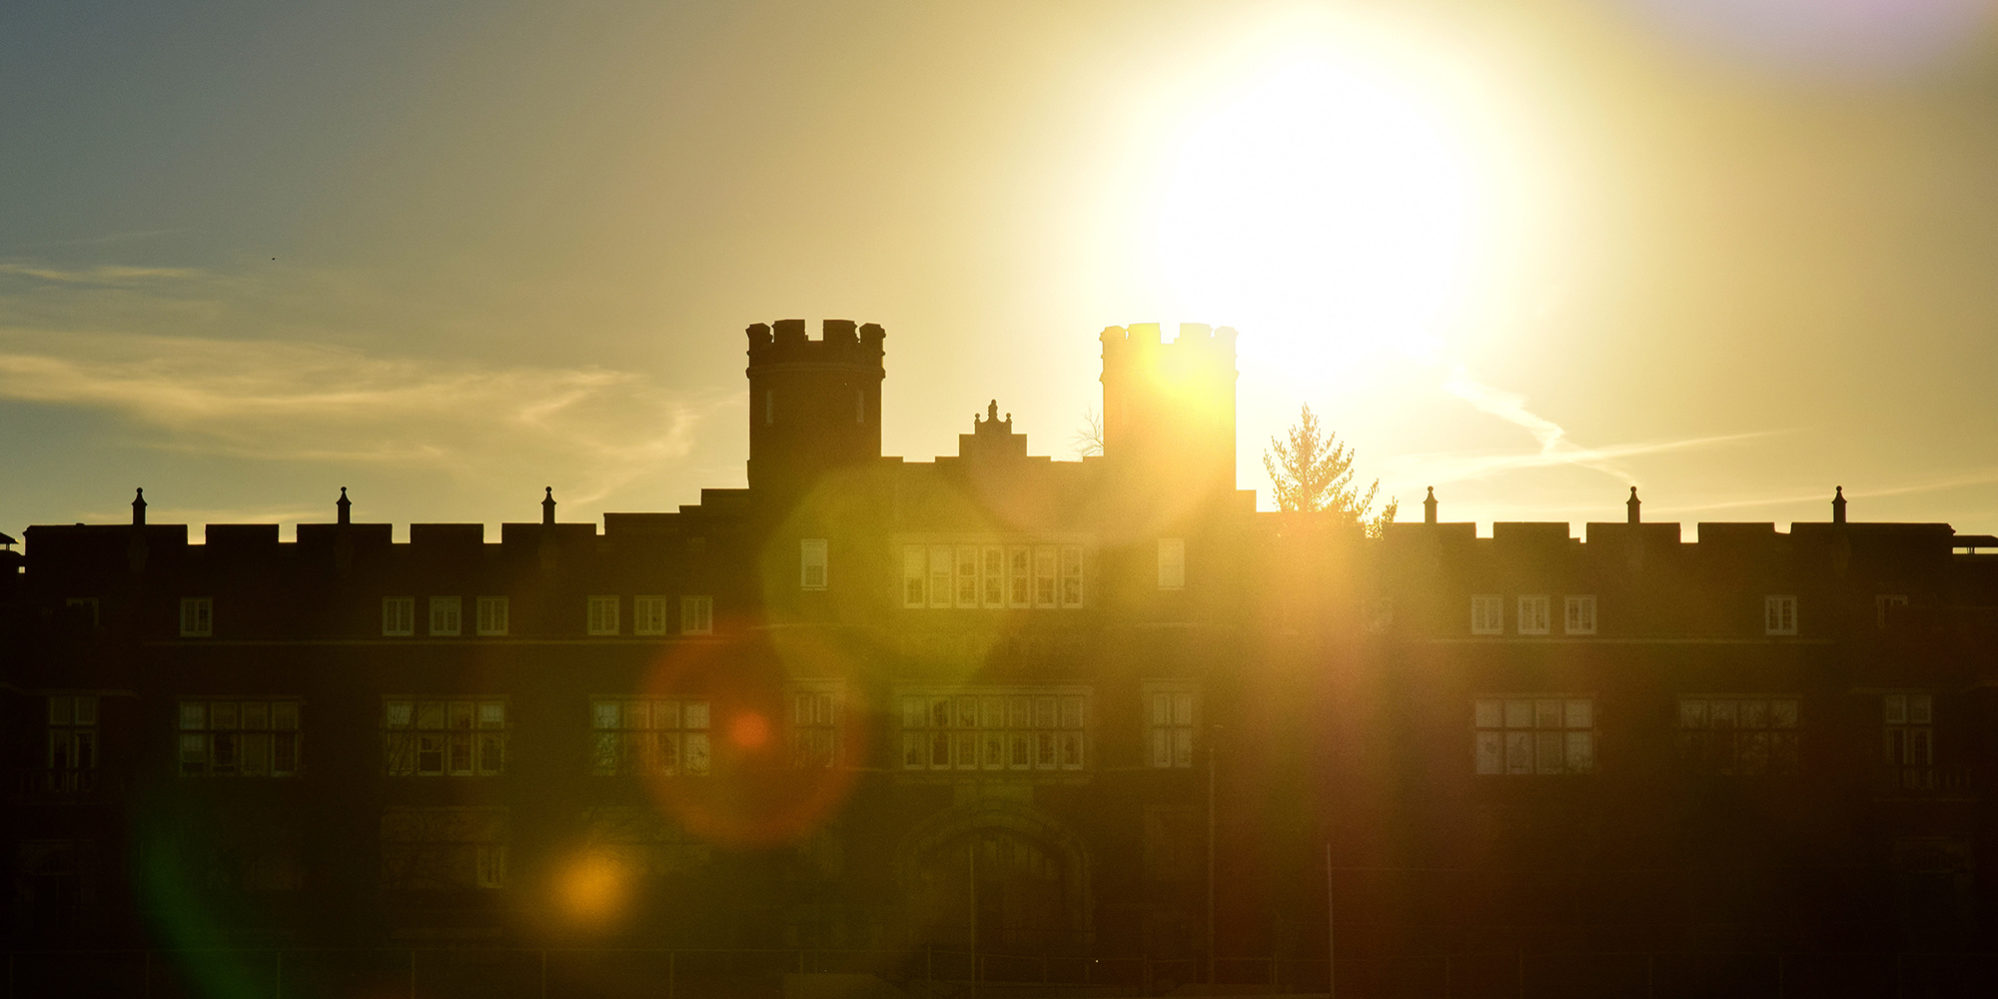 The sun rising behind Cleveland High School in Dutchtown, St. Louis, MO.